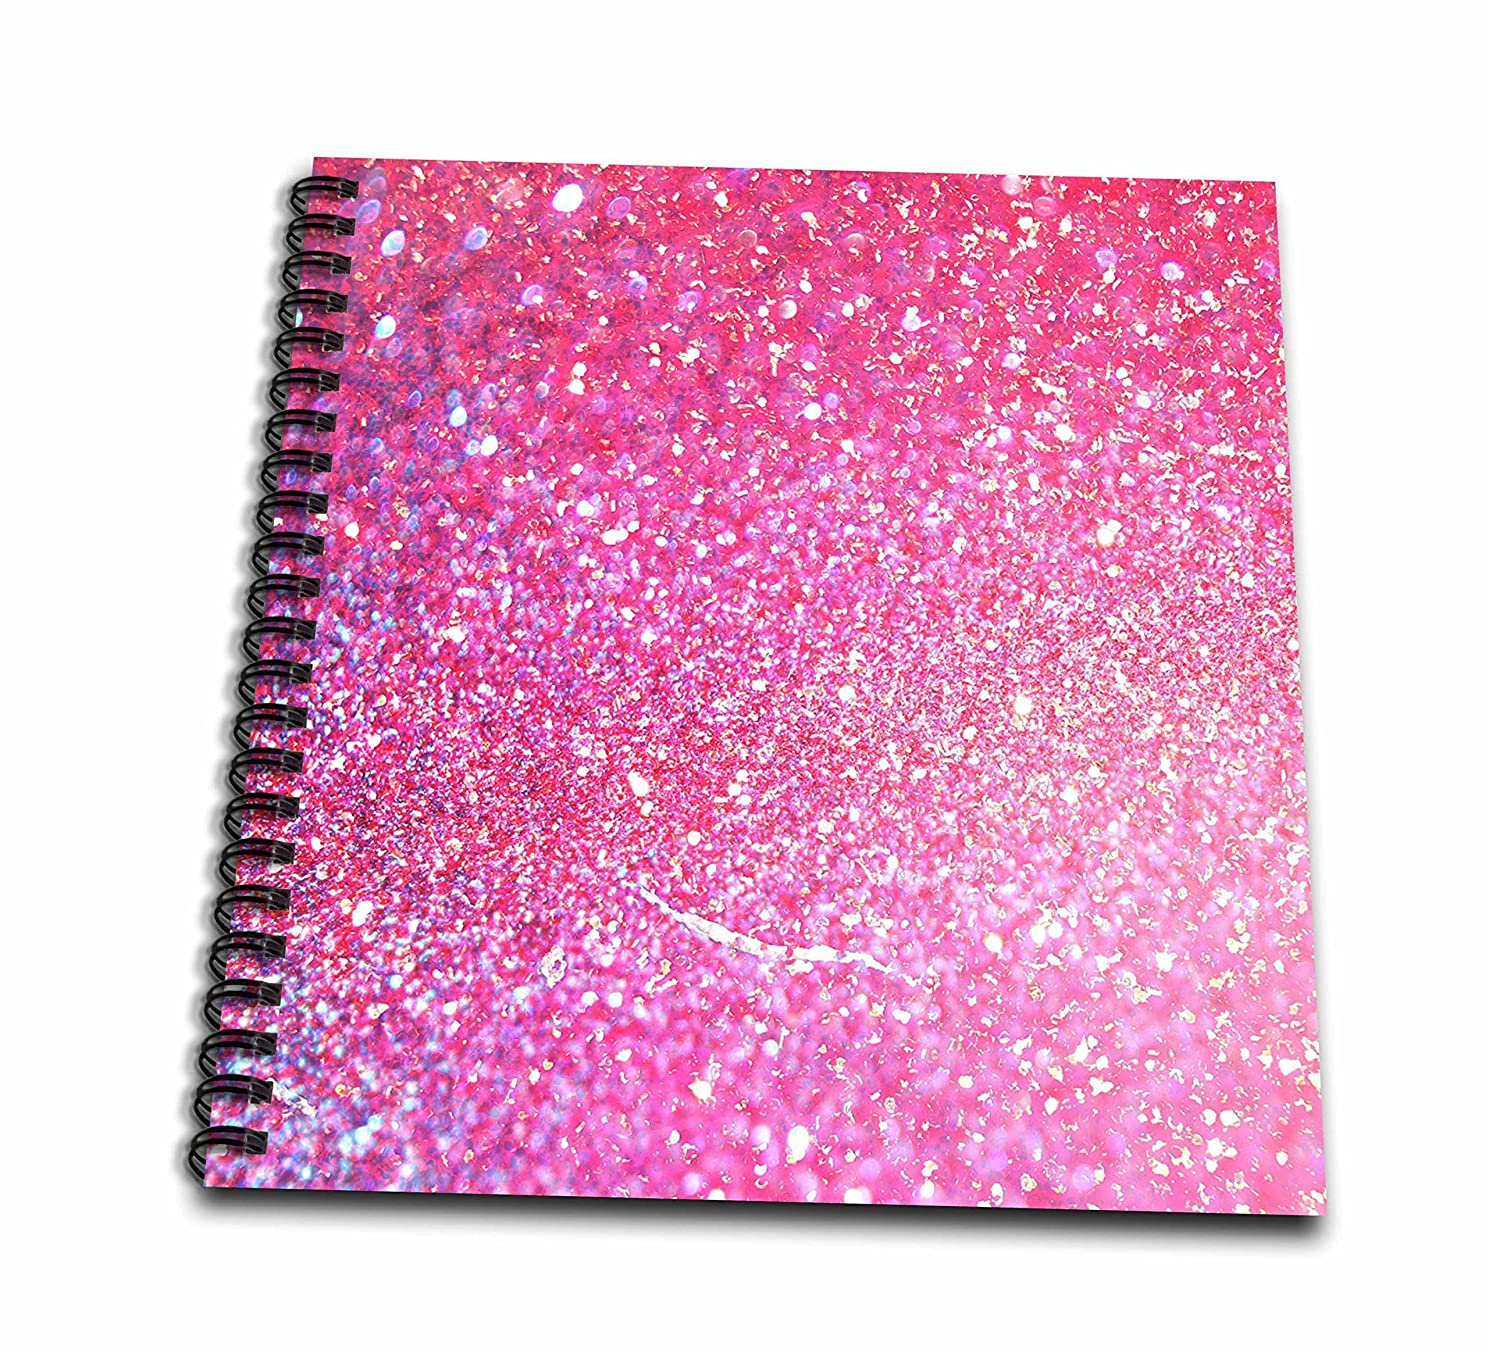 3D Rose Luxury Diamond Glitter Sparkly Mini Notepad